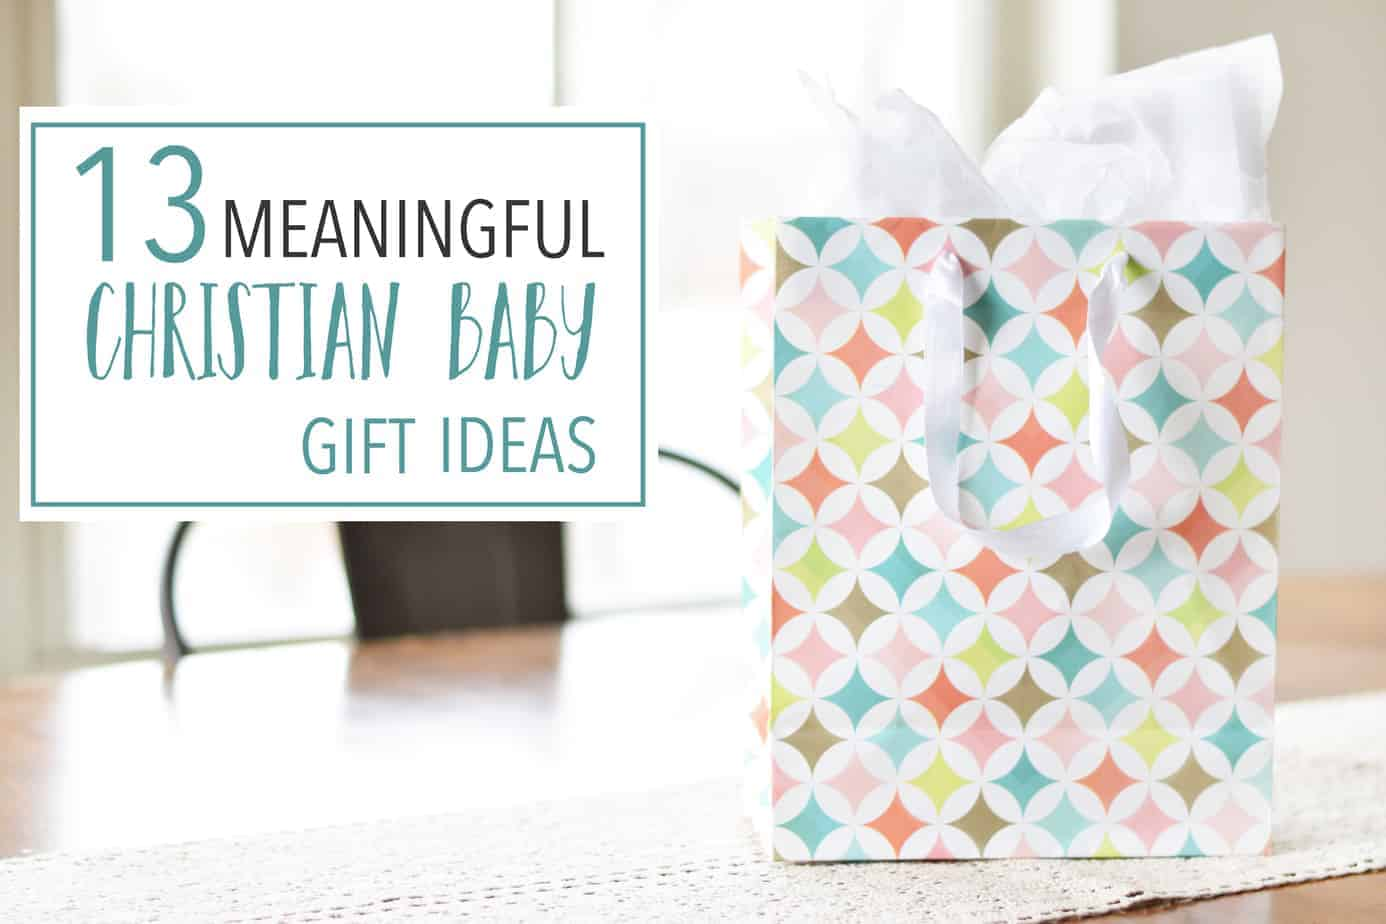 Christian Baby Gift Ideas for infant or newborn baby